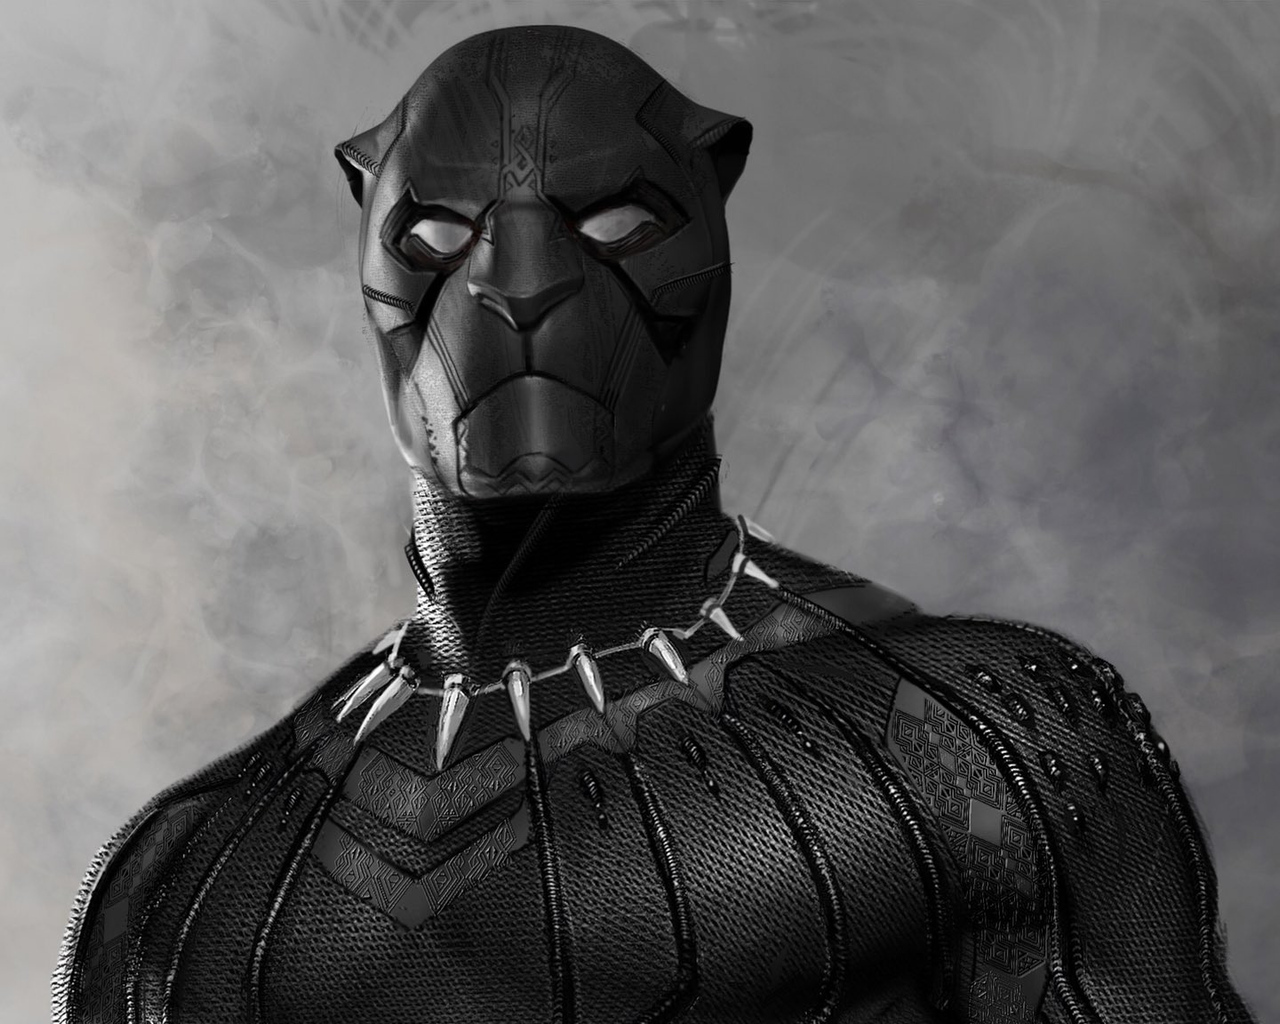 black-panther-art-2018-le.jpg